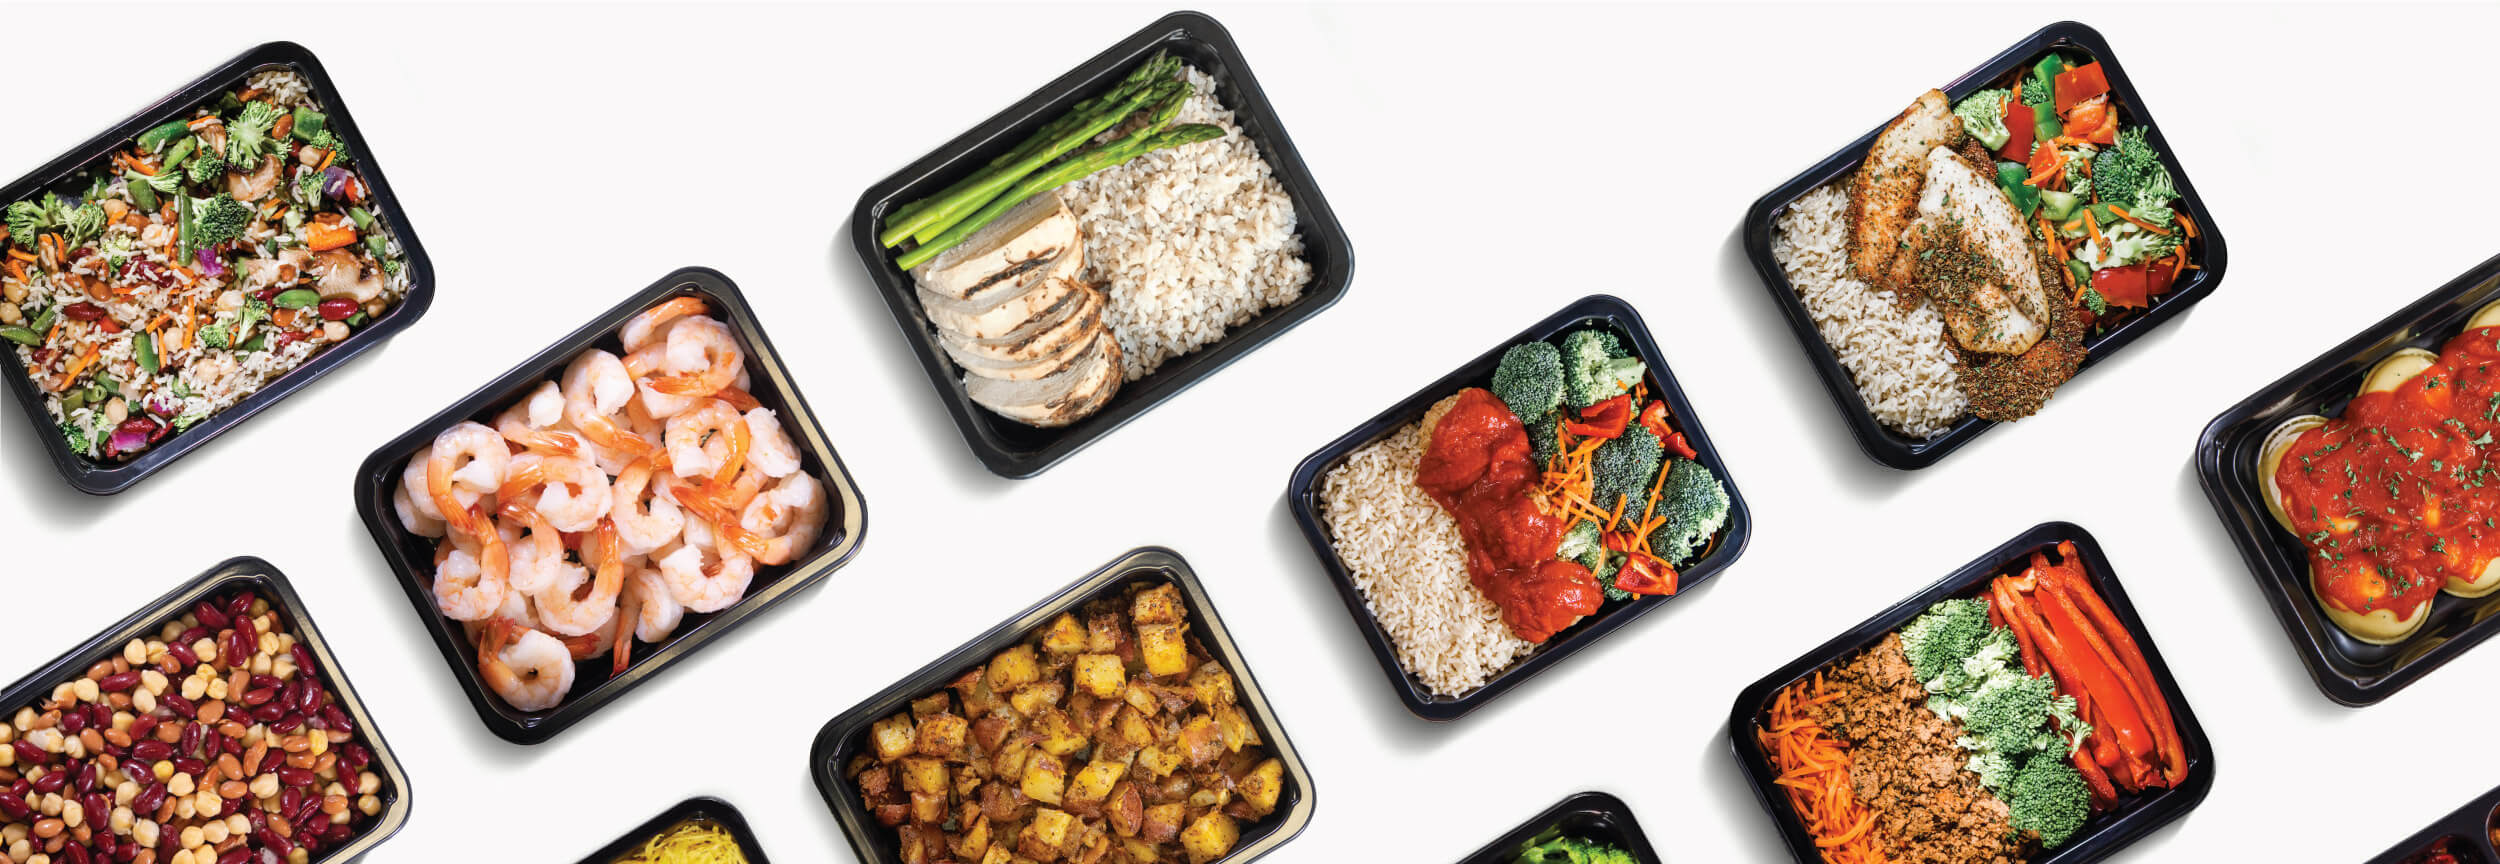 Top down picture of healthy Phoenix gym meal assortment on a table